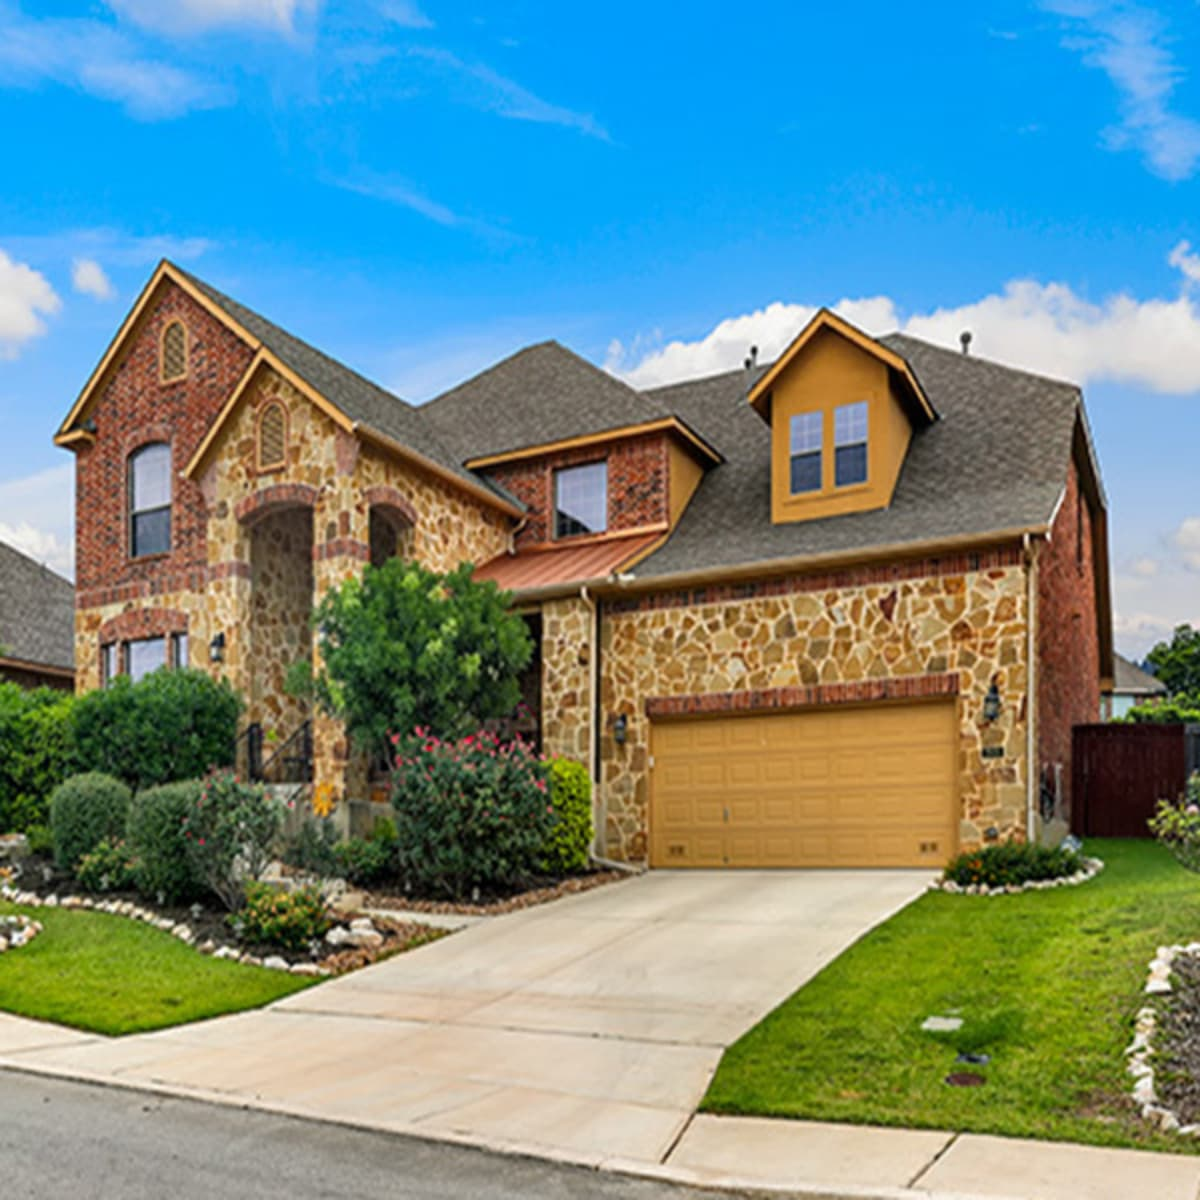 3531 Crest Noche home for sale San Antonio